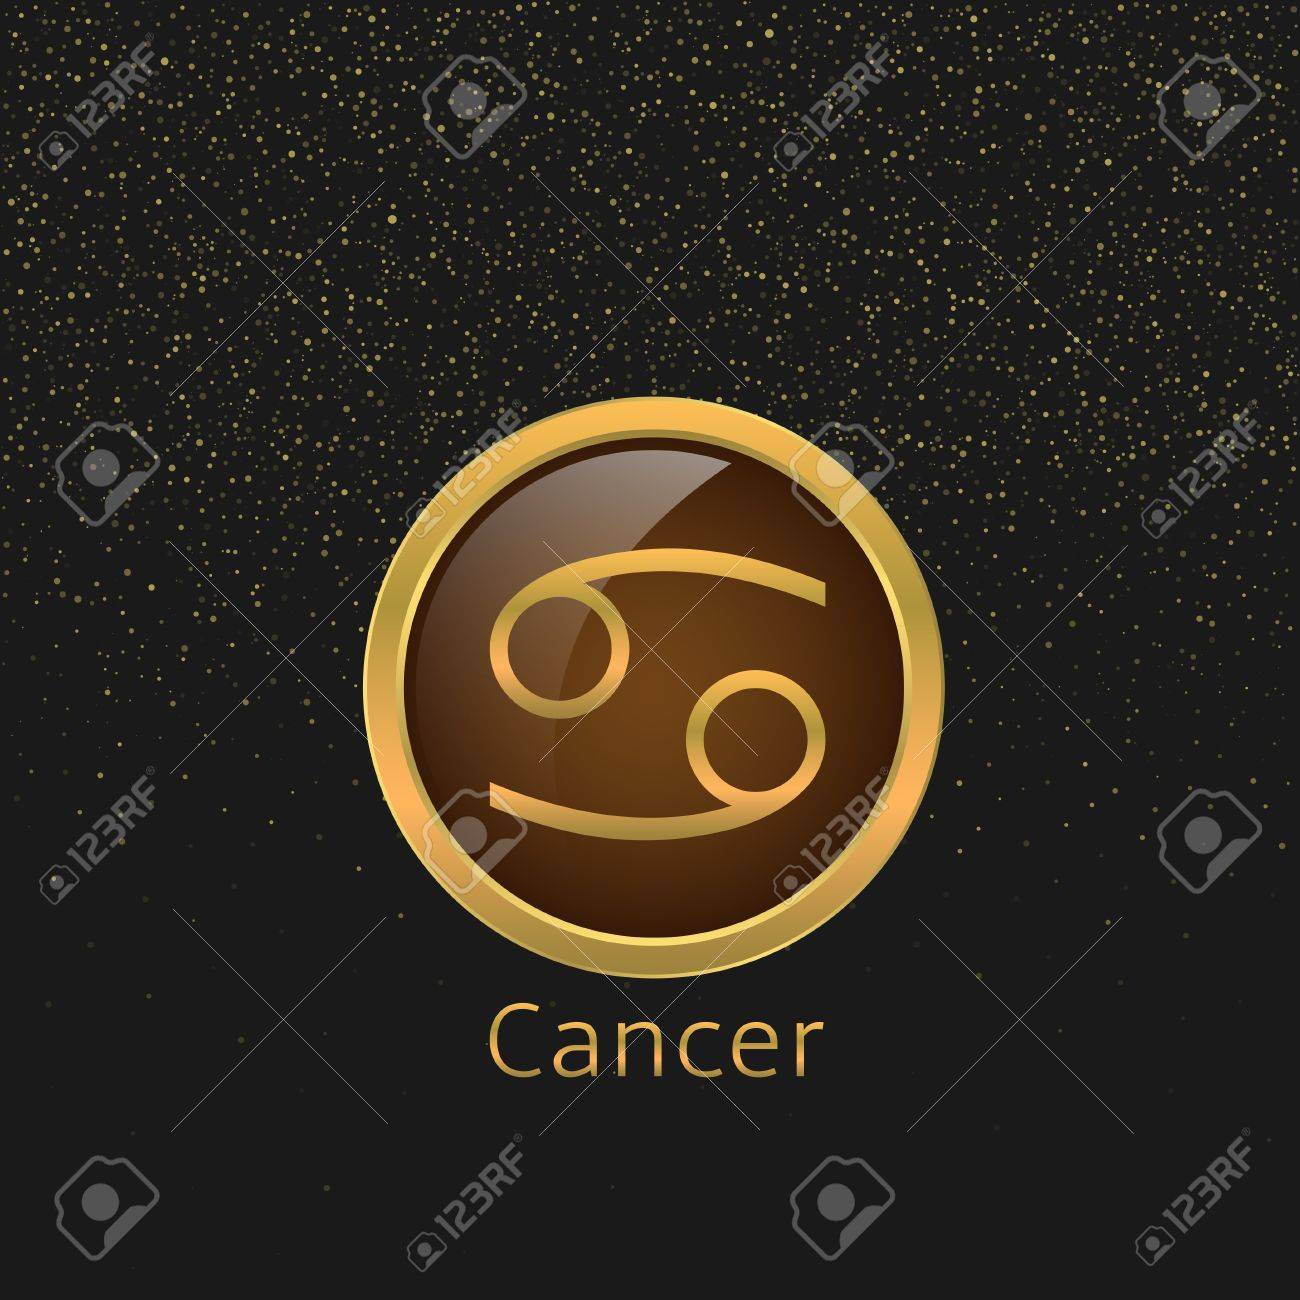 Cancer zodiac sign cancer abstract symbol cancer golden icon cancer zodiac sign cancer abstract symbol cancer golden icon stock vector 58015751 biocorpaavc Gallery